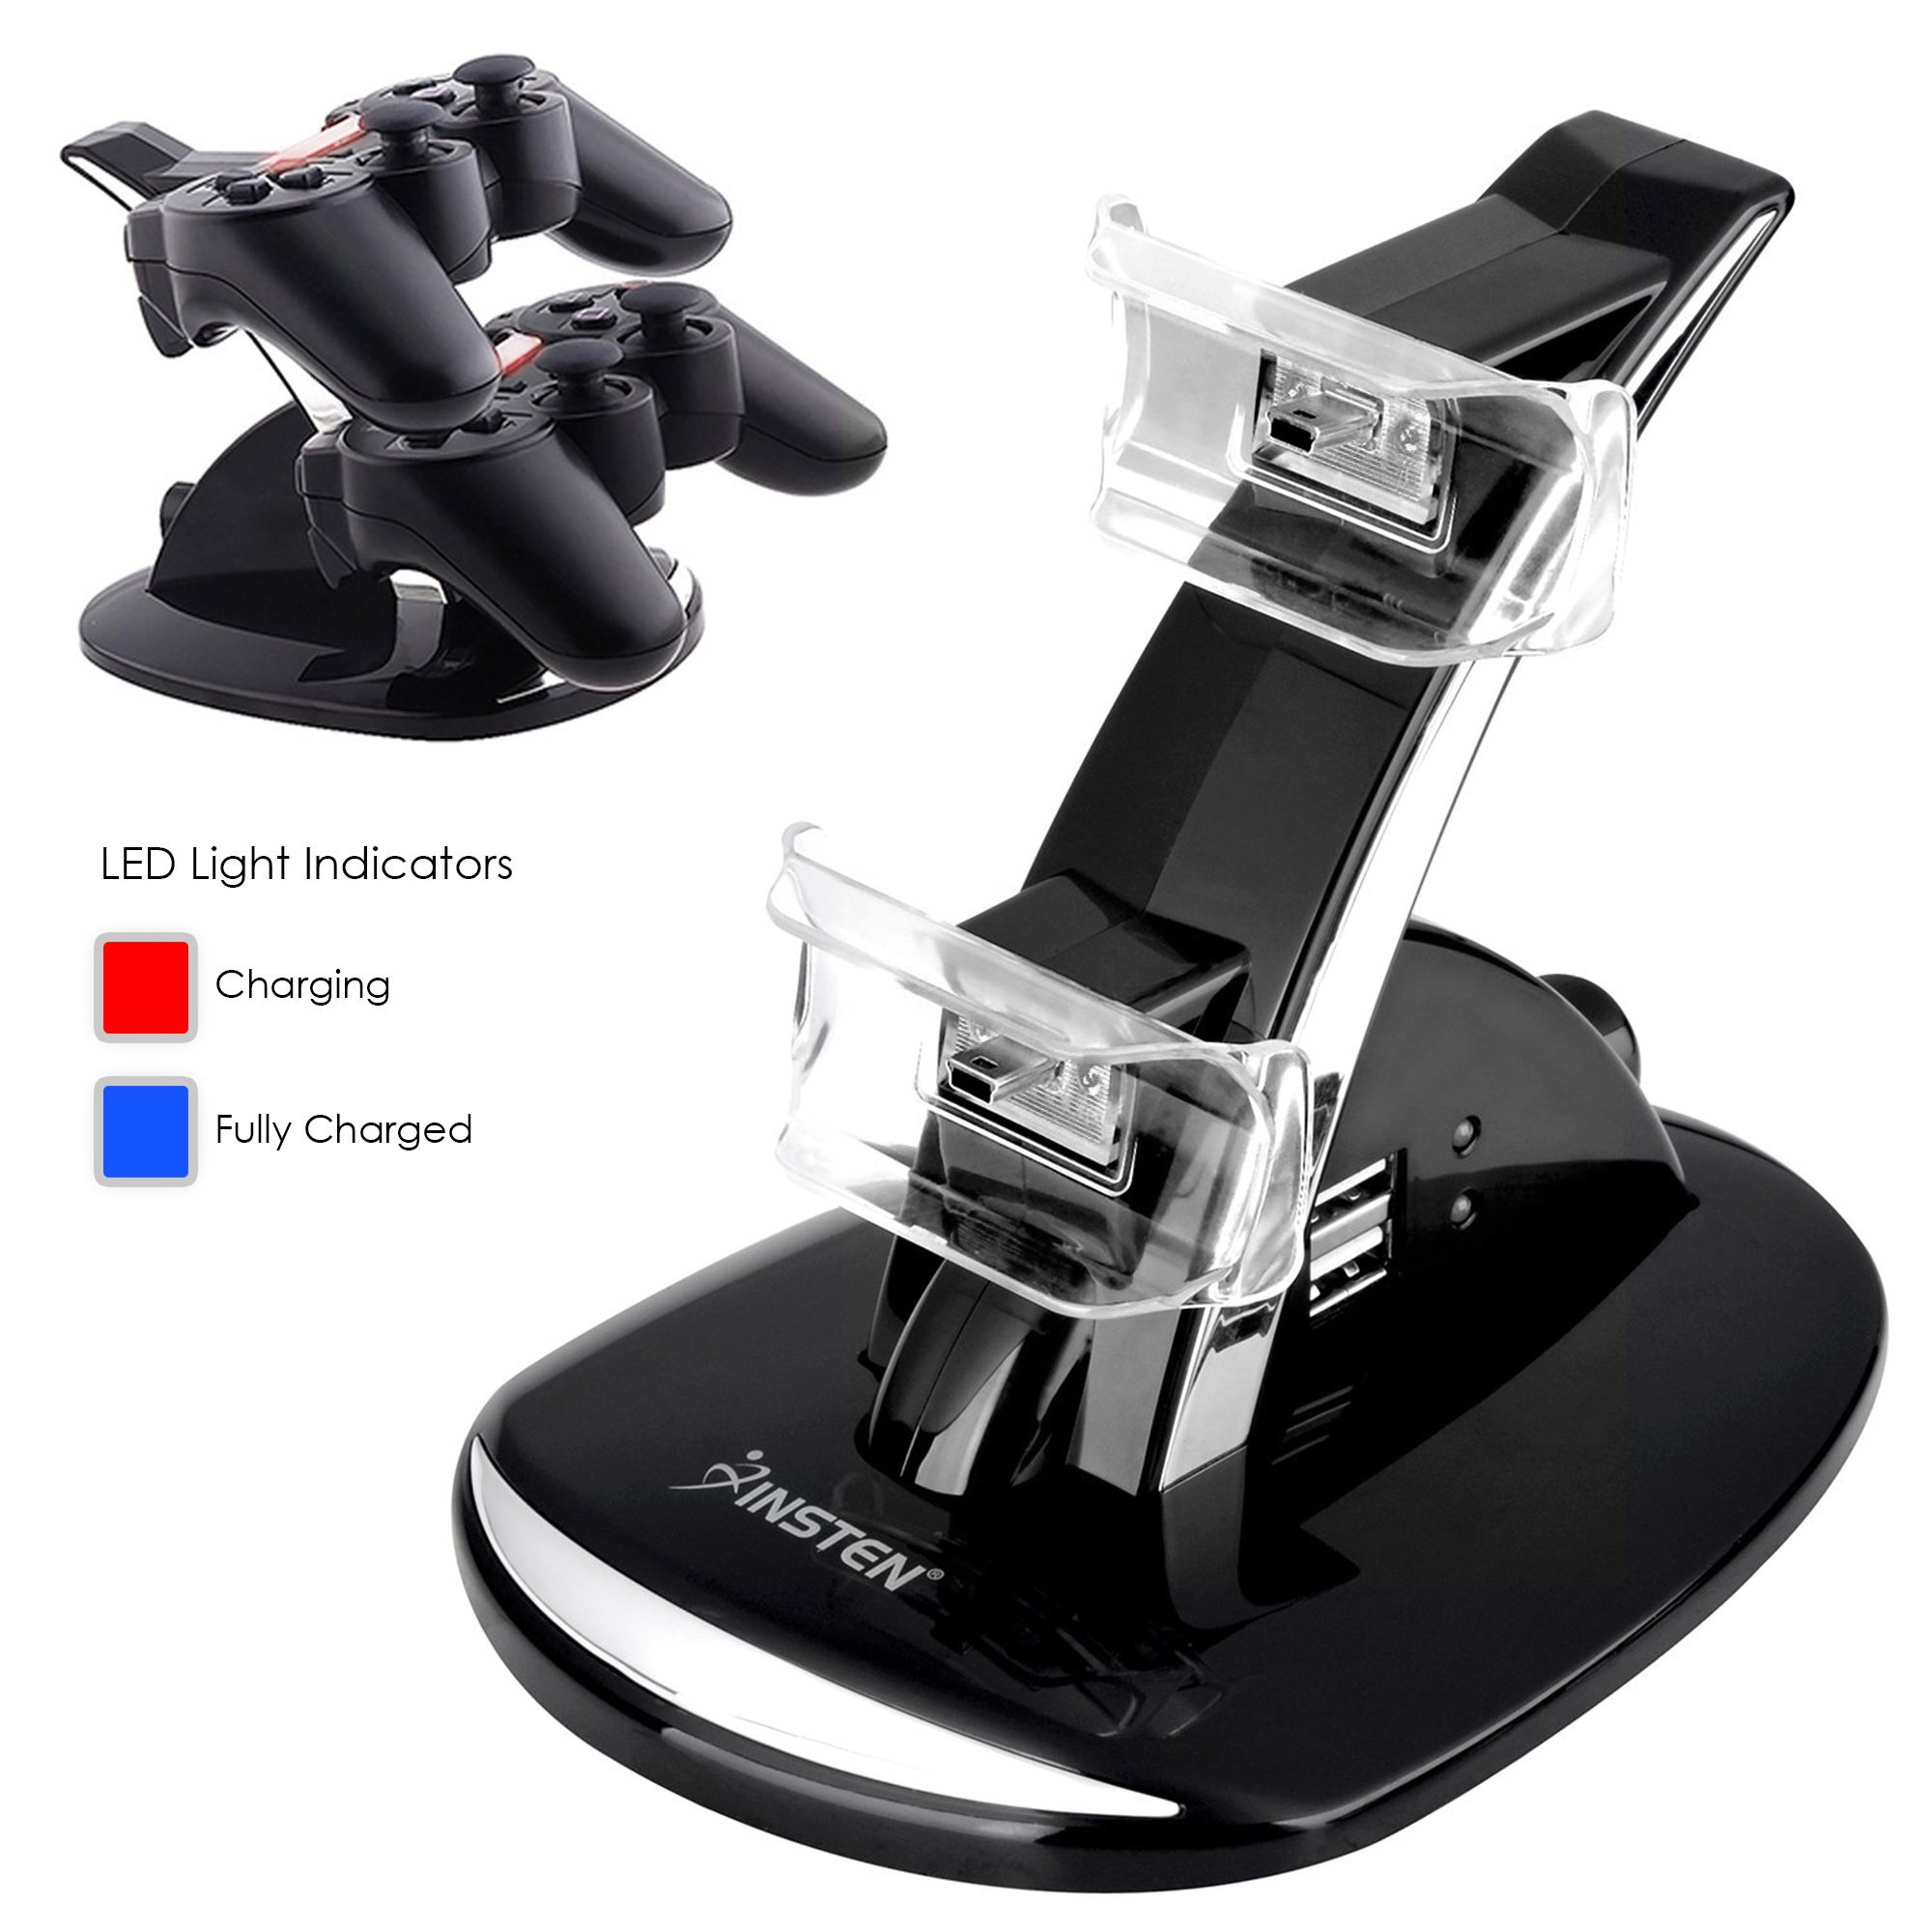 Insten for PS3 Playstation 3 - Controller Charger Dock Docking Station LED light indicator Power Stand (with extra 2 Port USB Charging Hub) for Sony PS3 Dual Shock Wireless Remote Controllers Gamepad